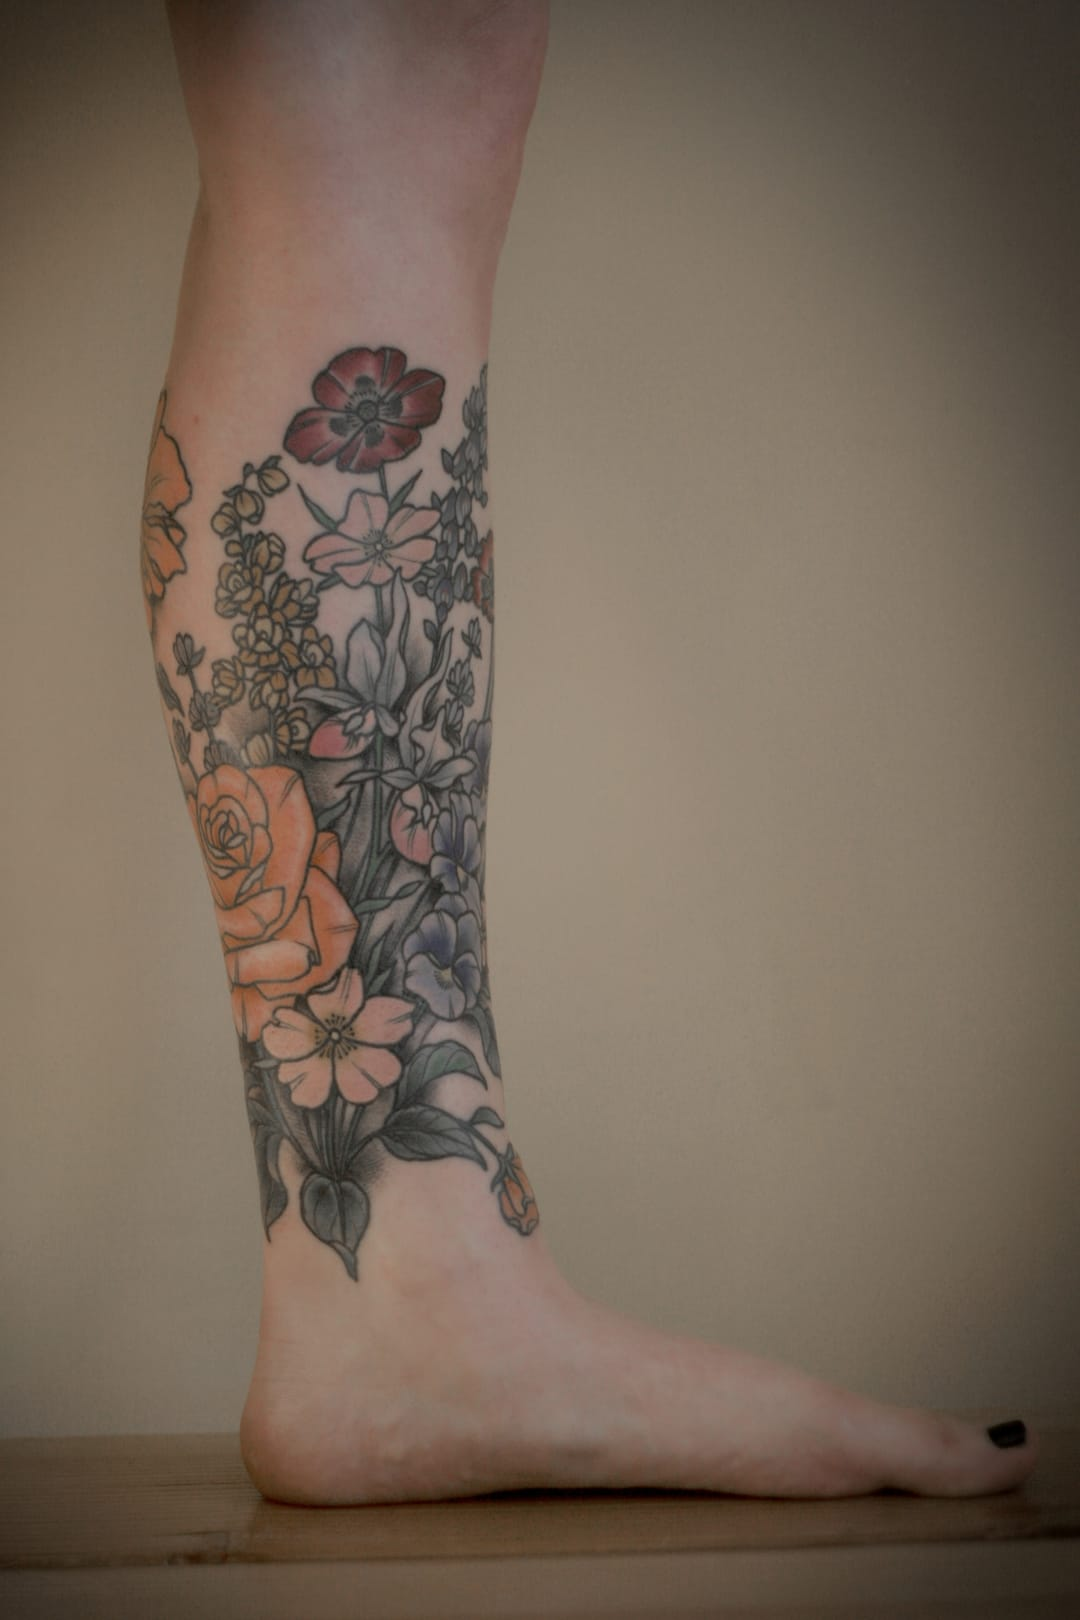 Beautiful flower tattoo.